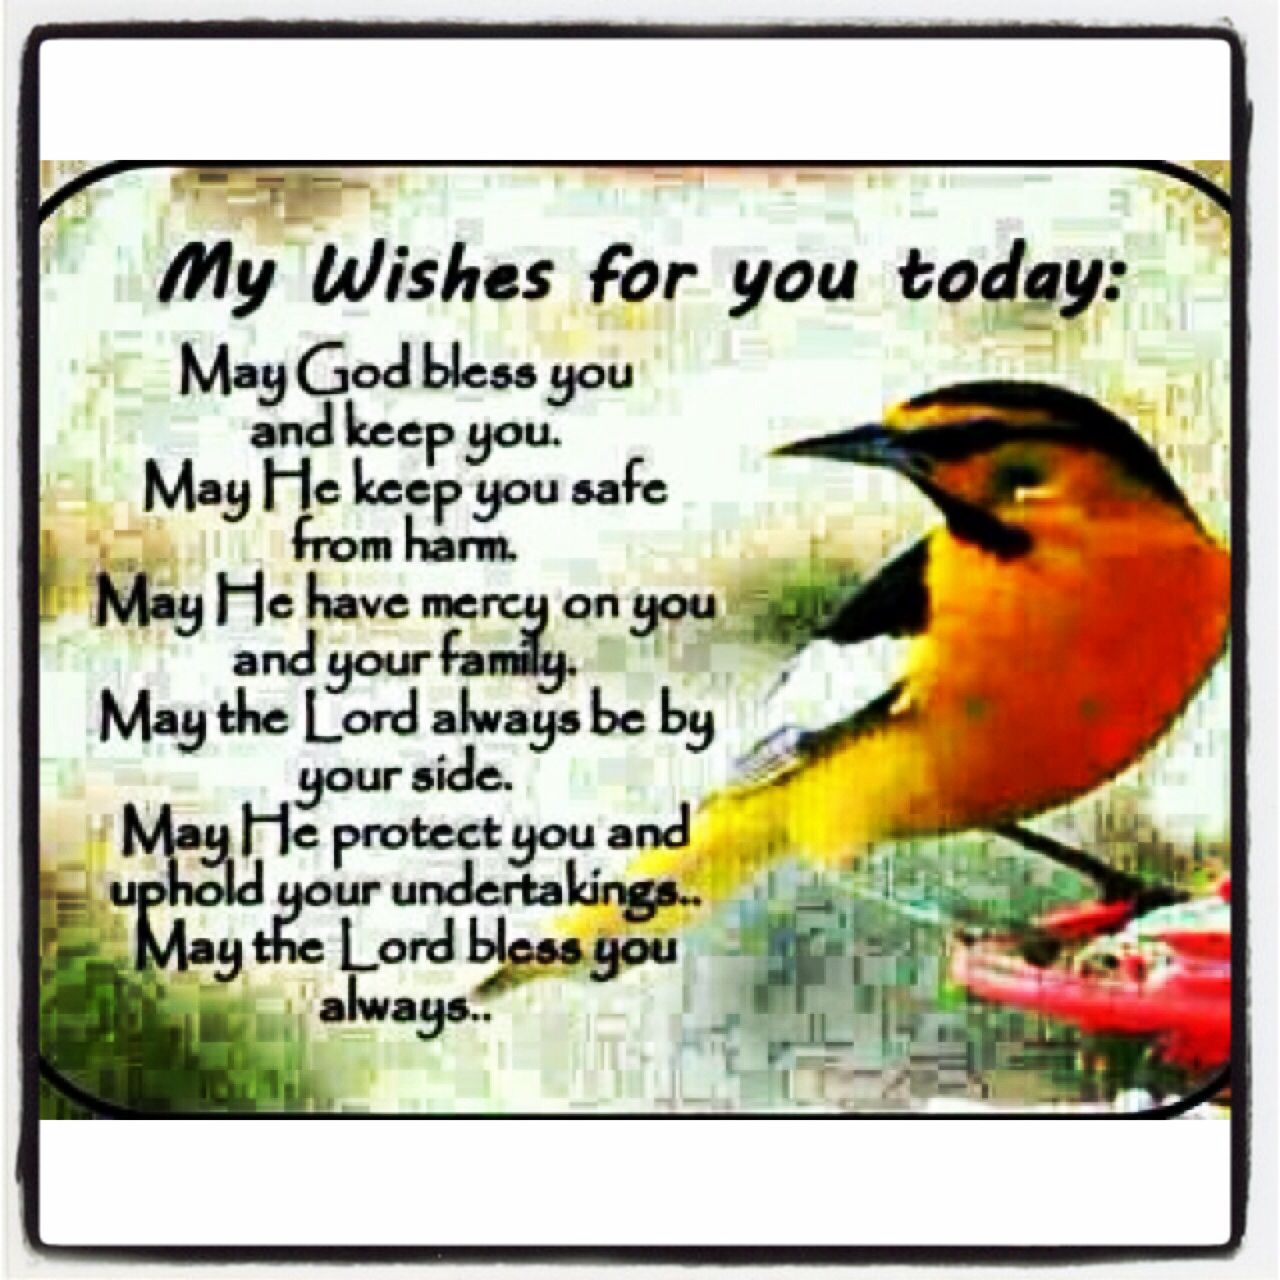 Early Morning Blessing Quotes: #My Wishes For You Today. May Your Day Be Filled With Love